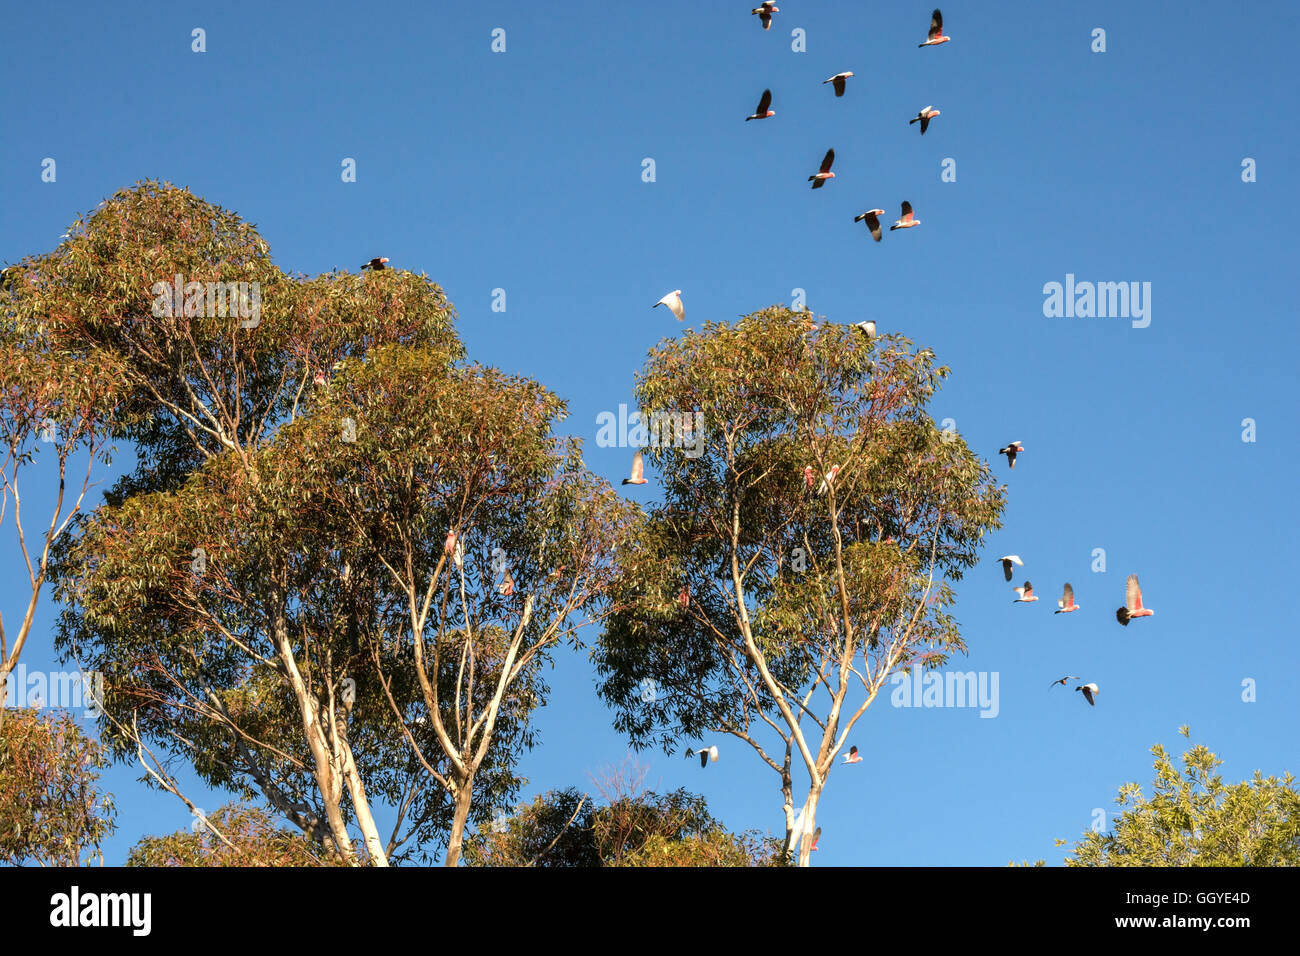 Galahs flying in and out of a gum tree in the late afternoon. Cacatua roseicapilla. - Stock Image